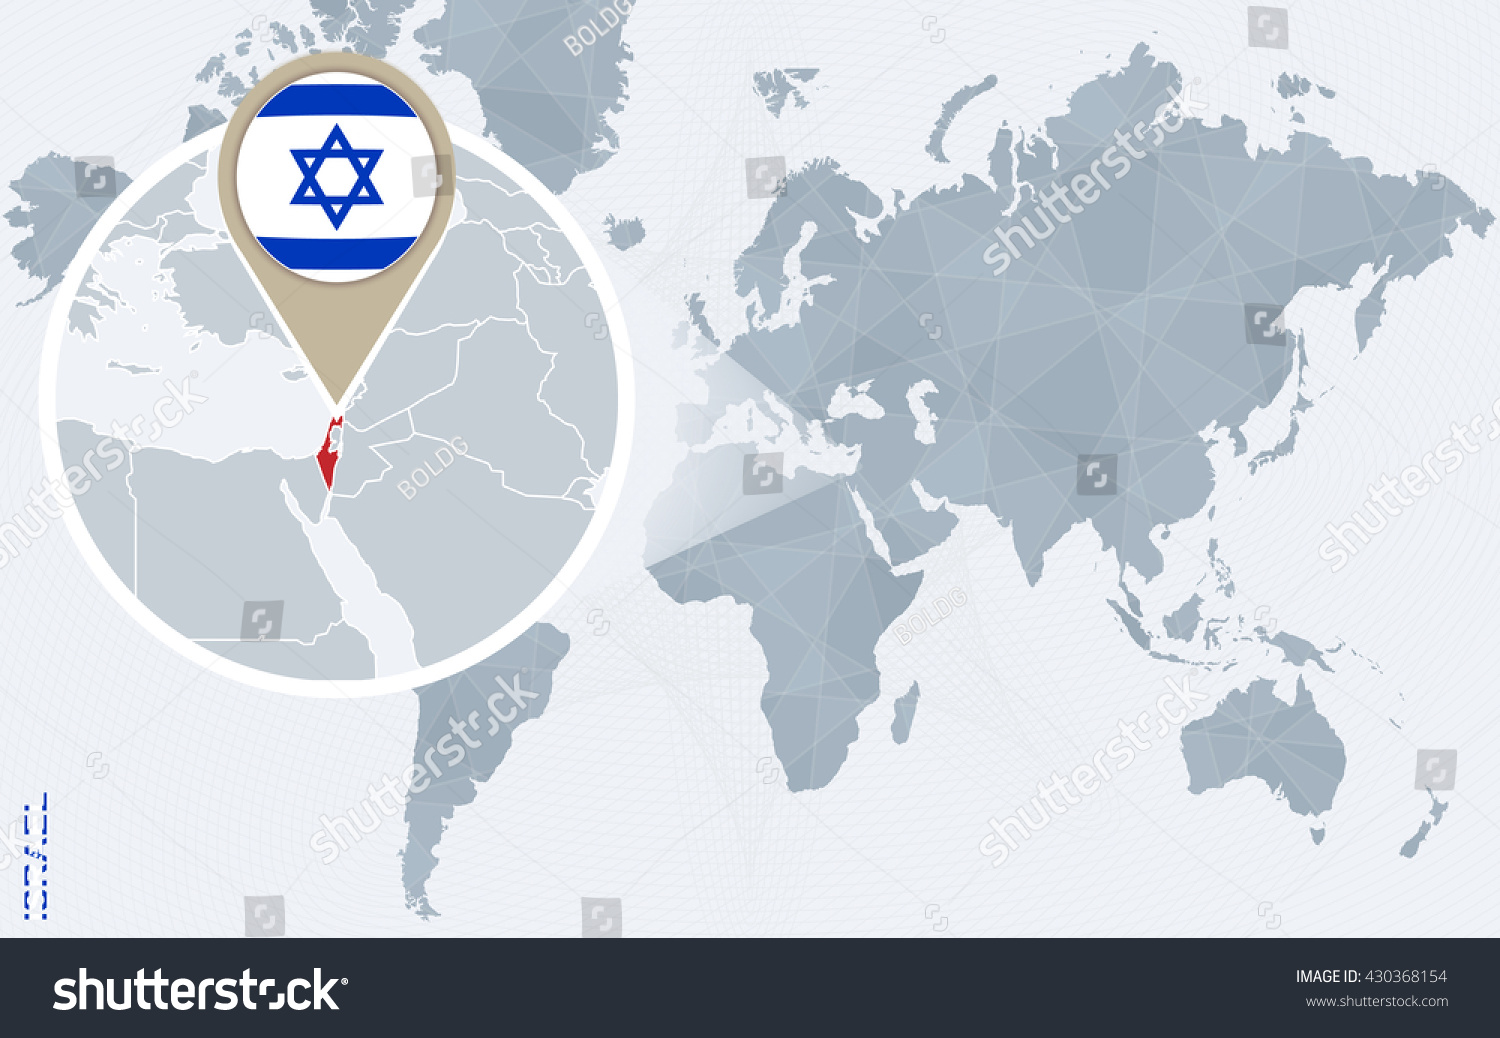 Abstract blue world map magnified israel stock vector 430368154 abstract blue world map with magnified israel israel flag and map vector illustration gumiabroncs Image collections